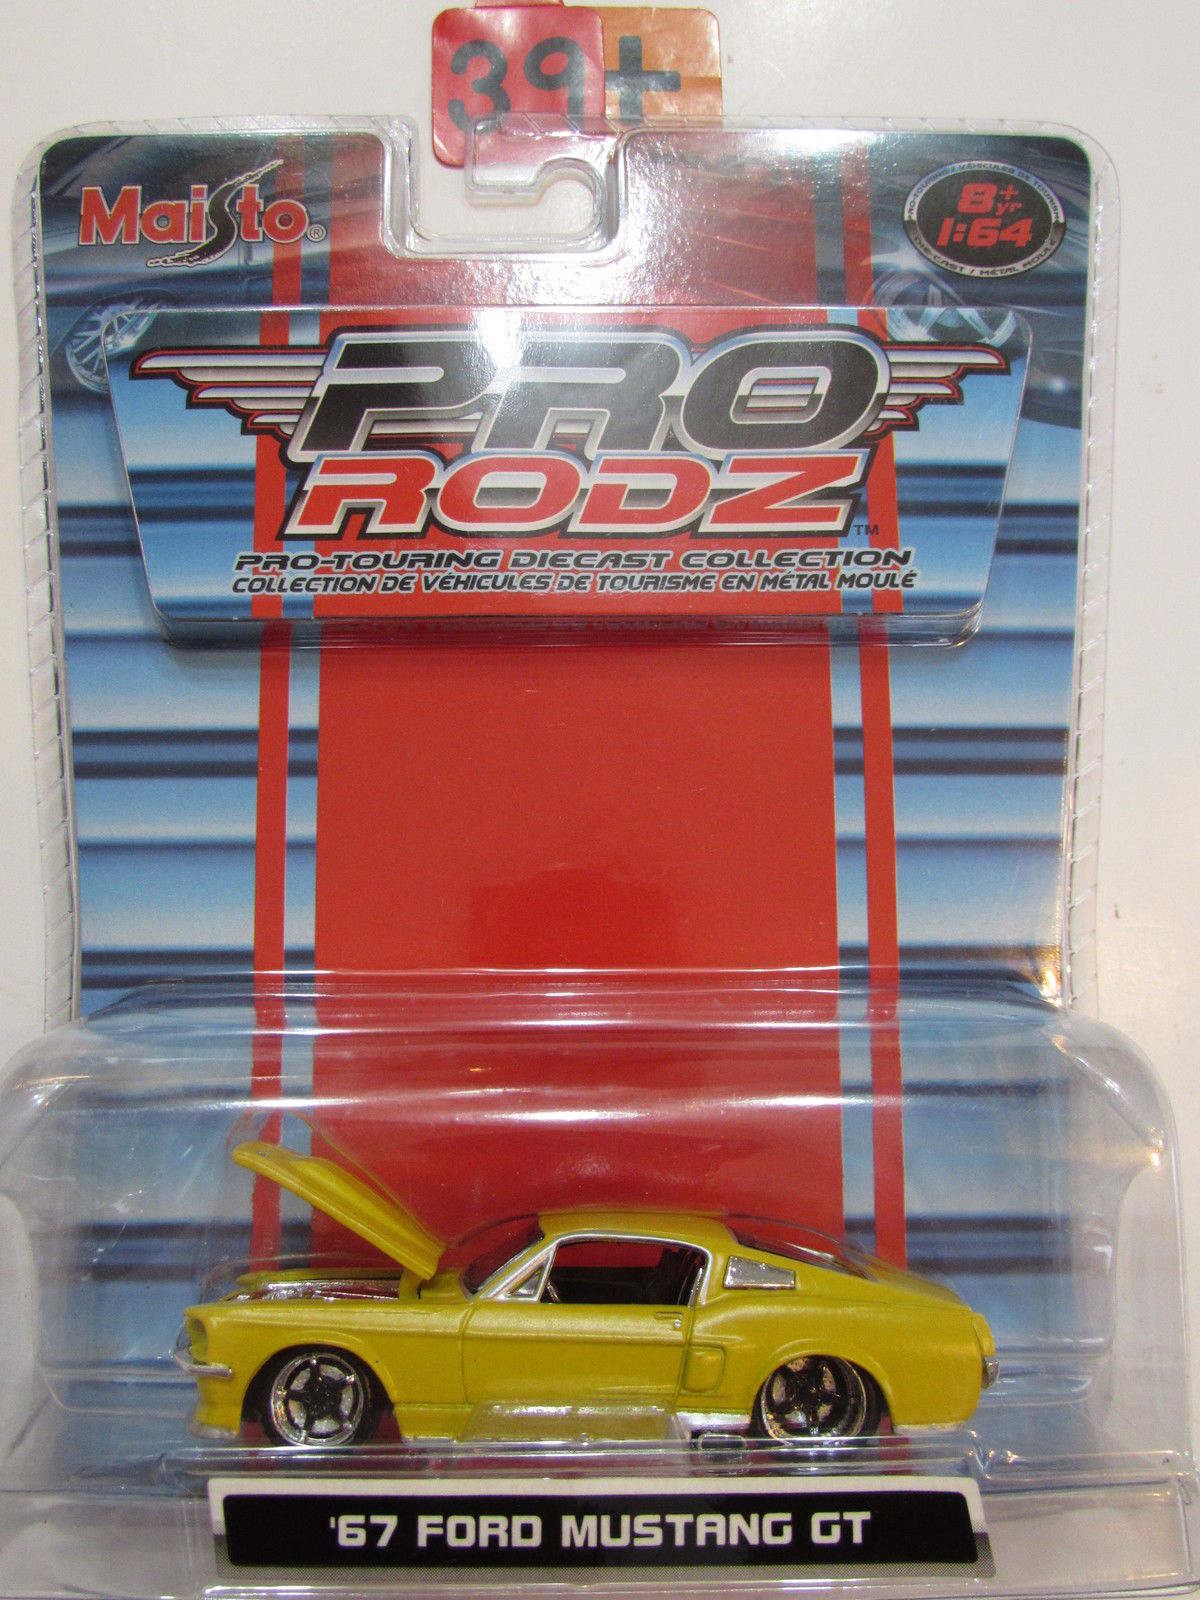 MAISTO PRO RODZ - '67 FORD MUSTANG GT YELLOW SCALE 1:64